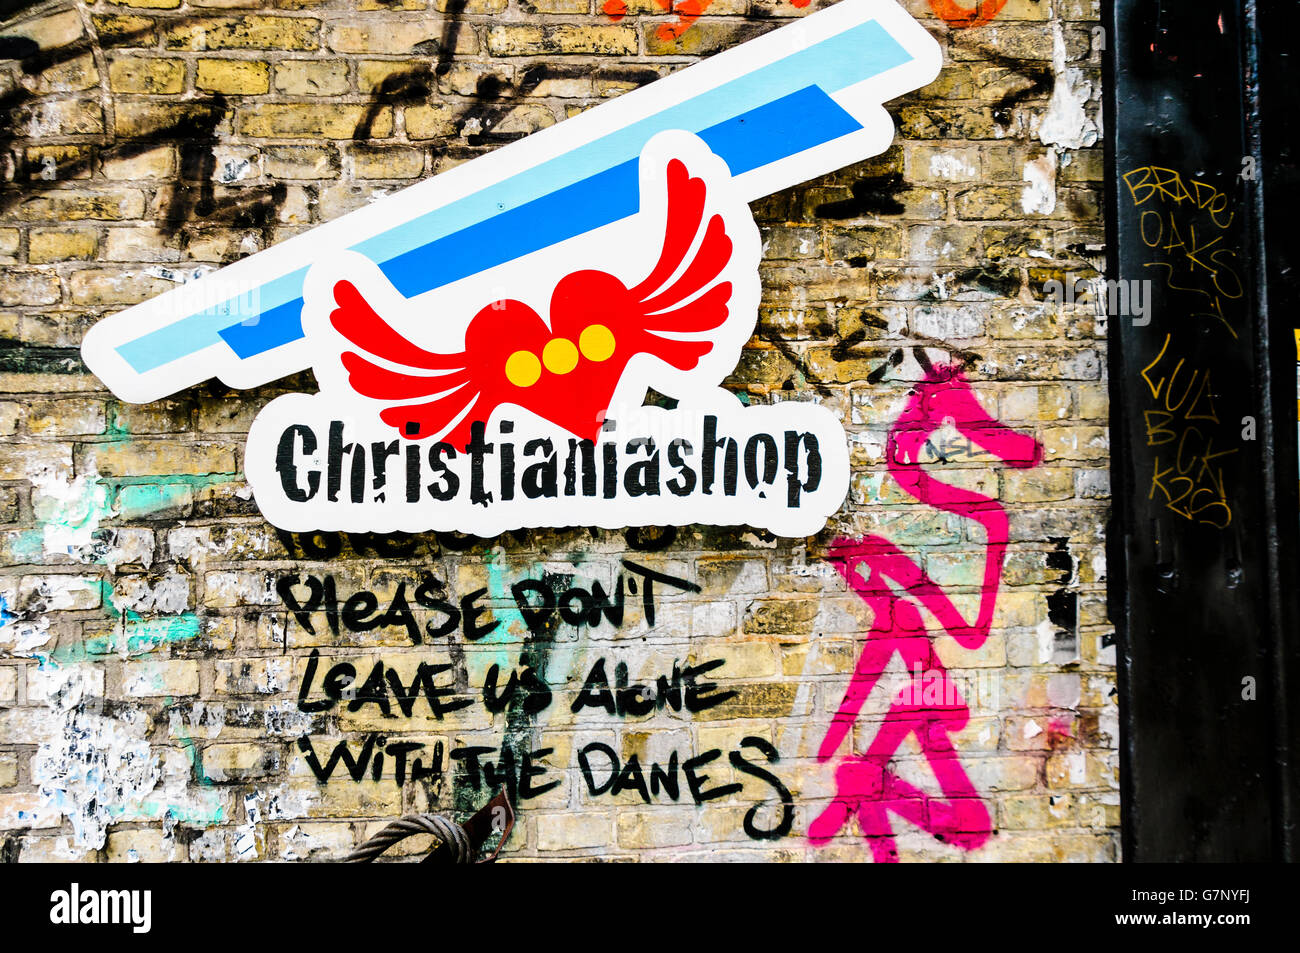 Sign outside a shop in Freetown Christiania, Copenhagen, with the message 'Please don't leave us alone with - Stock Image